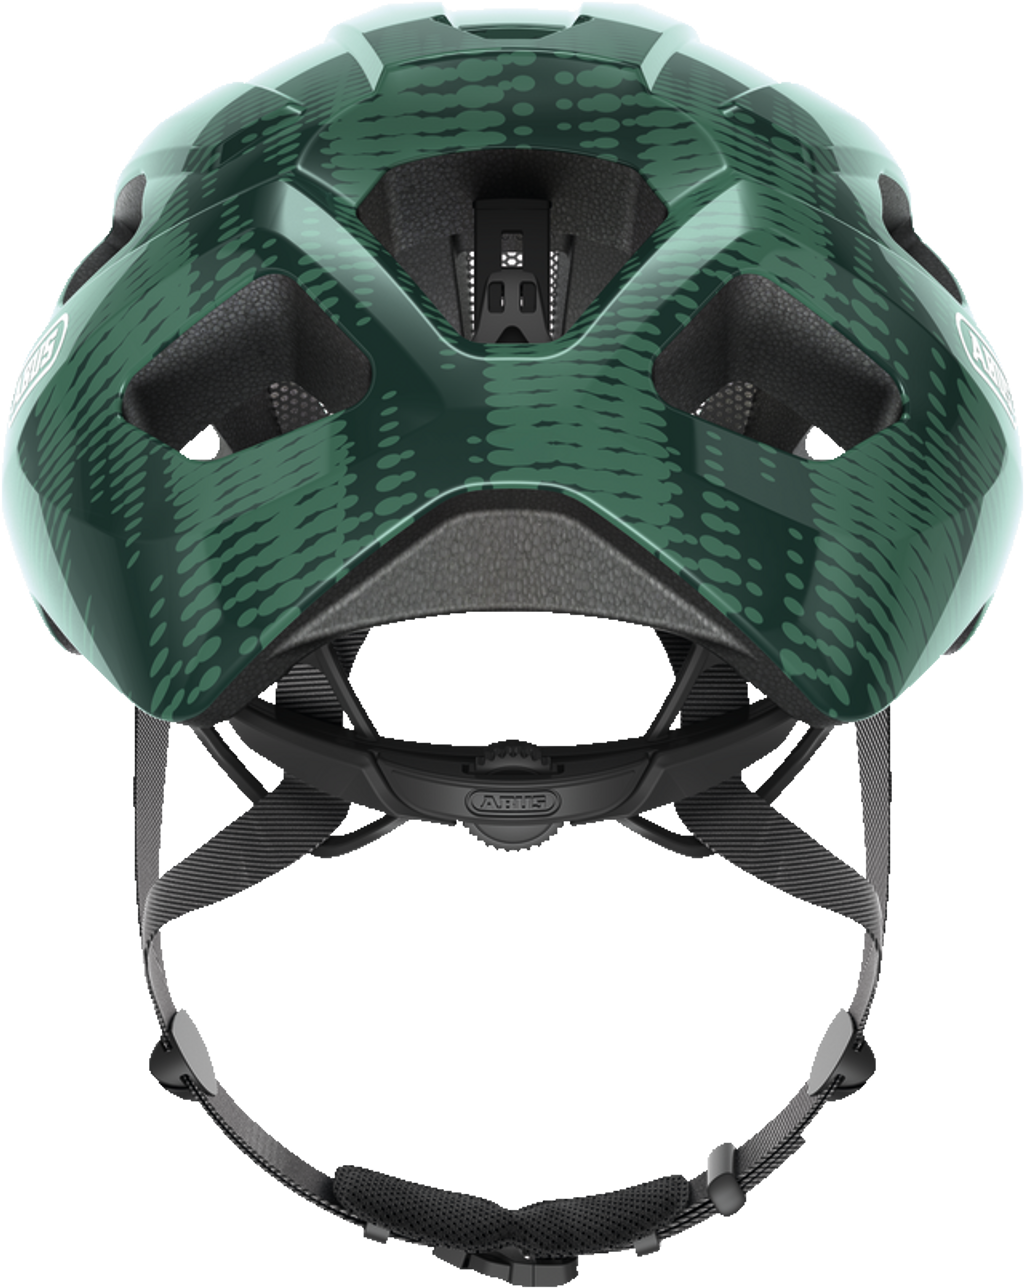 87240_Macator_opal_green_rear_abus_640.png